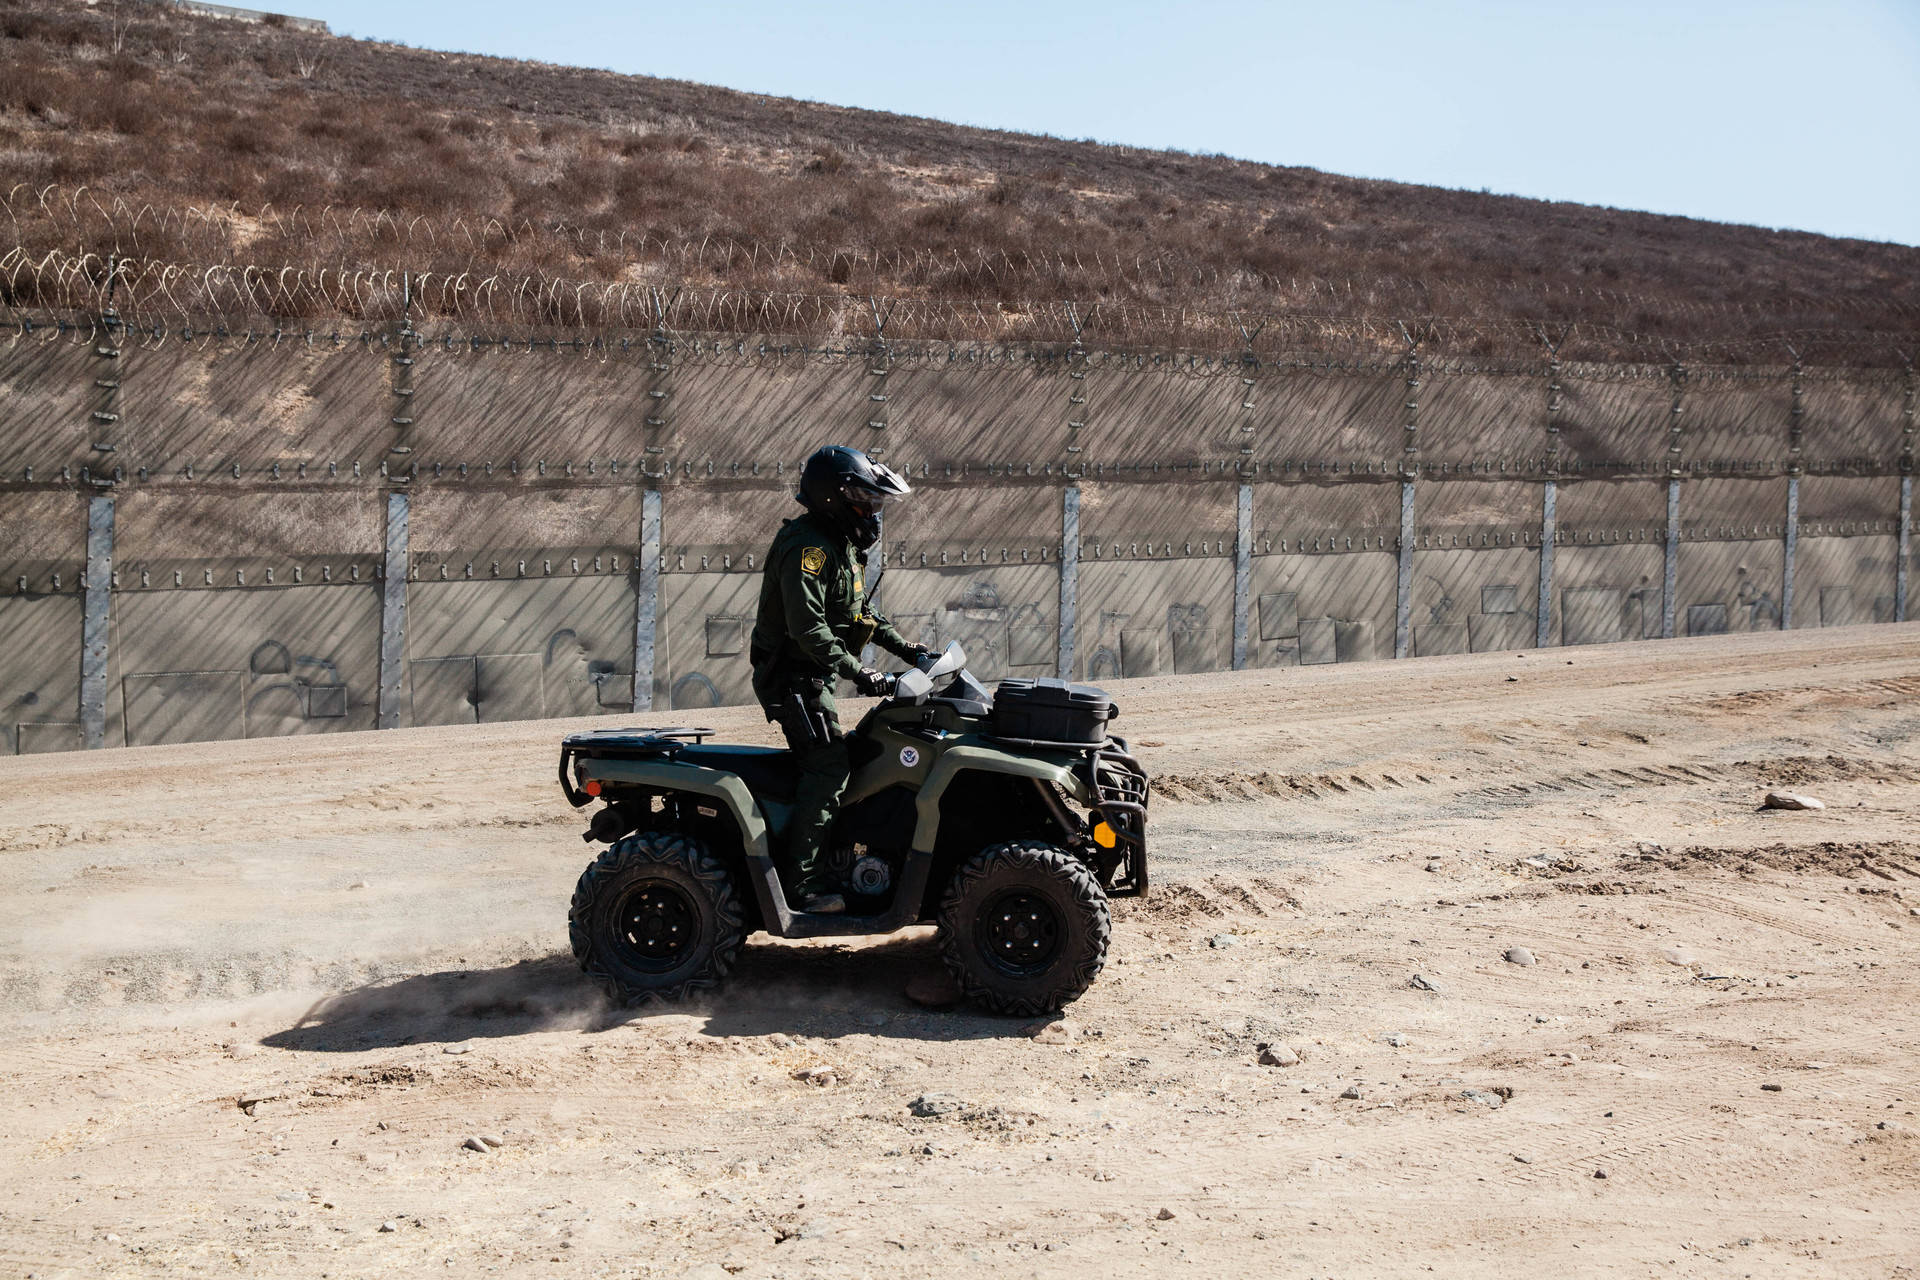 U.S. Border Patrol polices Goat Canyon area near the border wall that divides the United States and Mexico. Ariana Drehsler